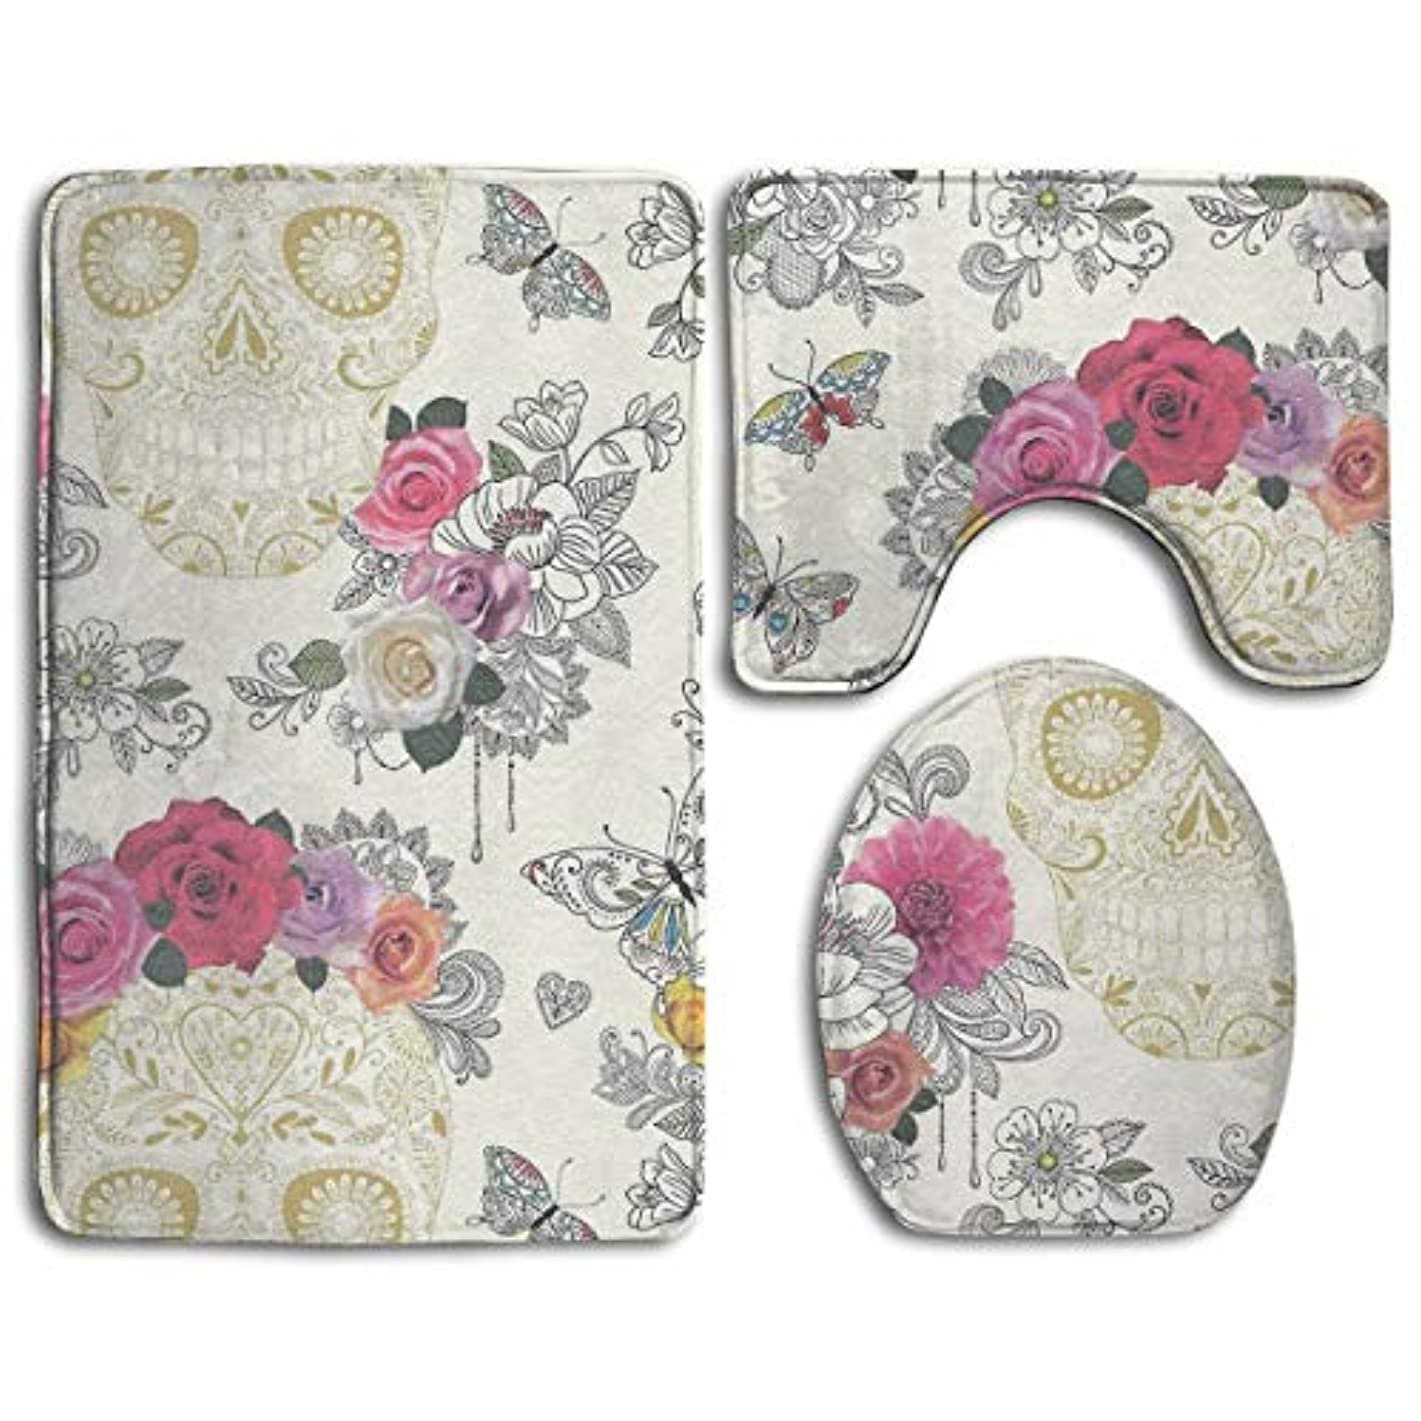 TERPASTRY Butterfly Floral Sugar Skull Bathroom Rug Mats Set 3 Piece Toilet Carpet Rugs Includes Contour Mat and Lid Cover Non Slip Absorption Mat Machine Wash/Dry Perfect Mats for Tub Shower